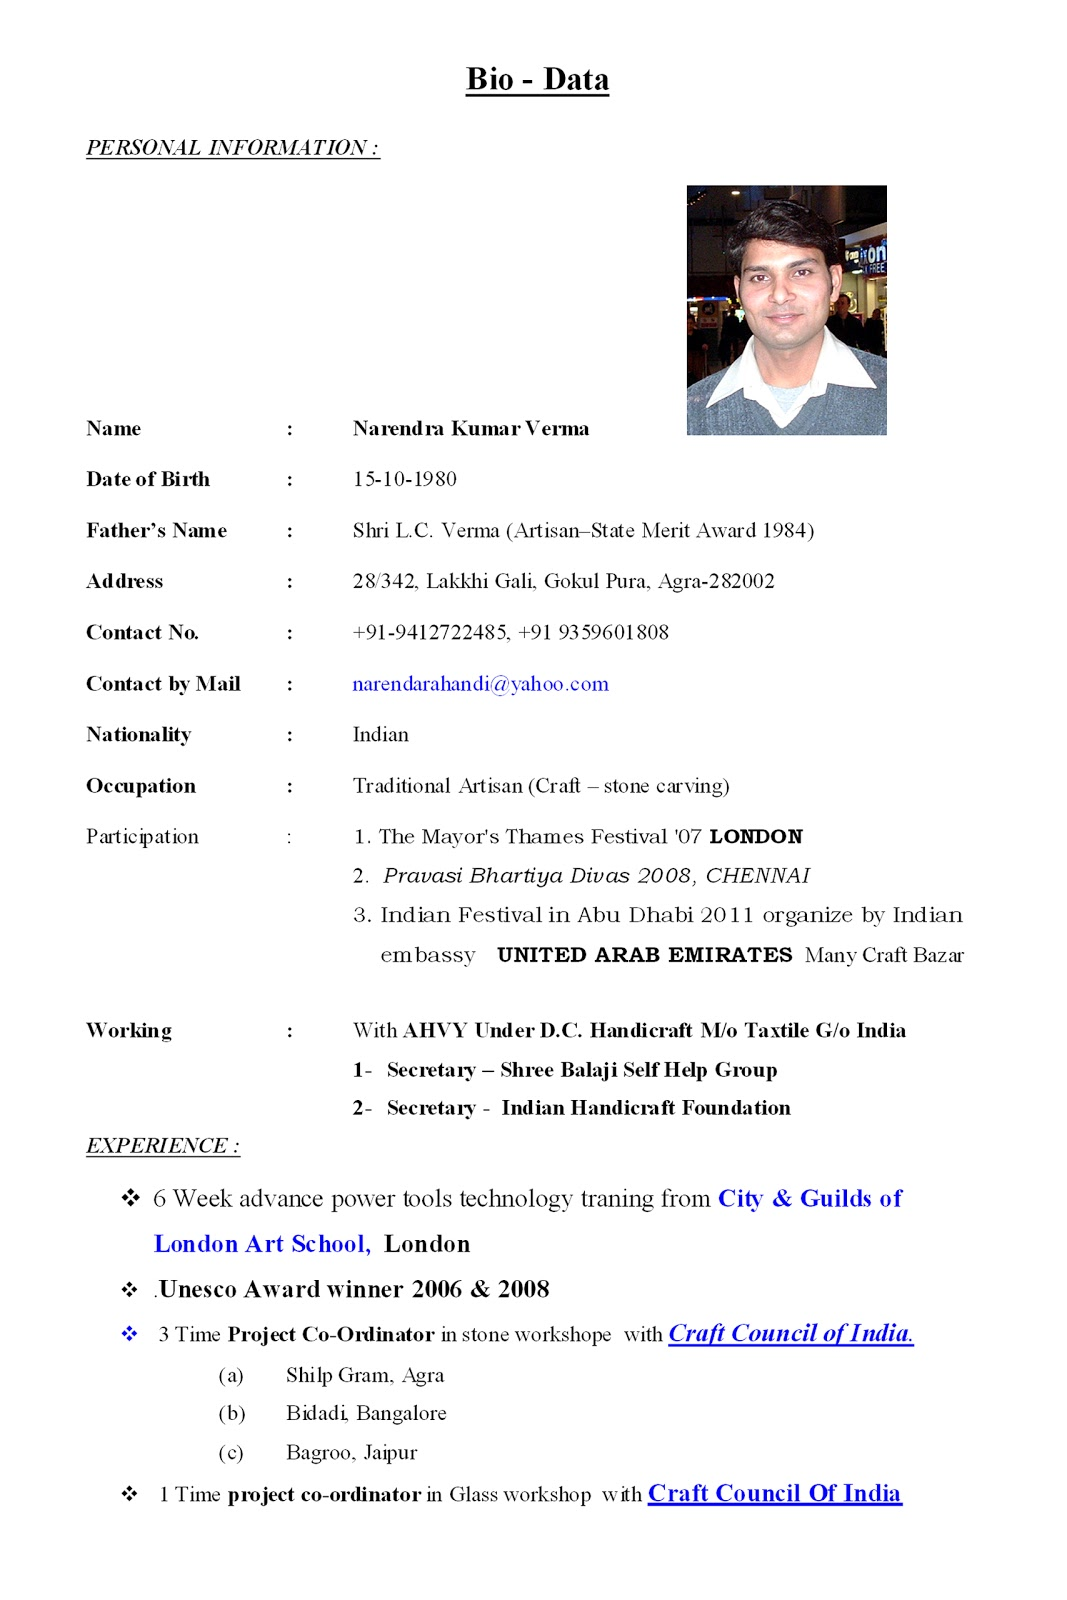 sample resume bio data converza co